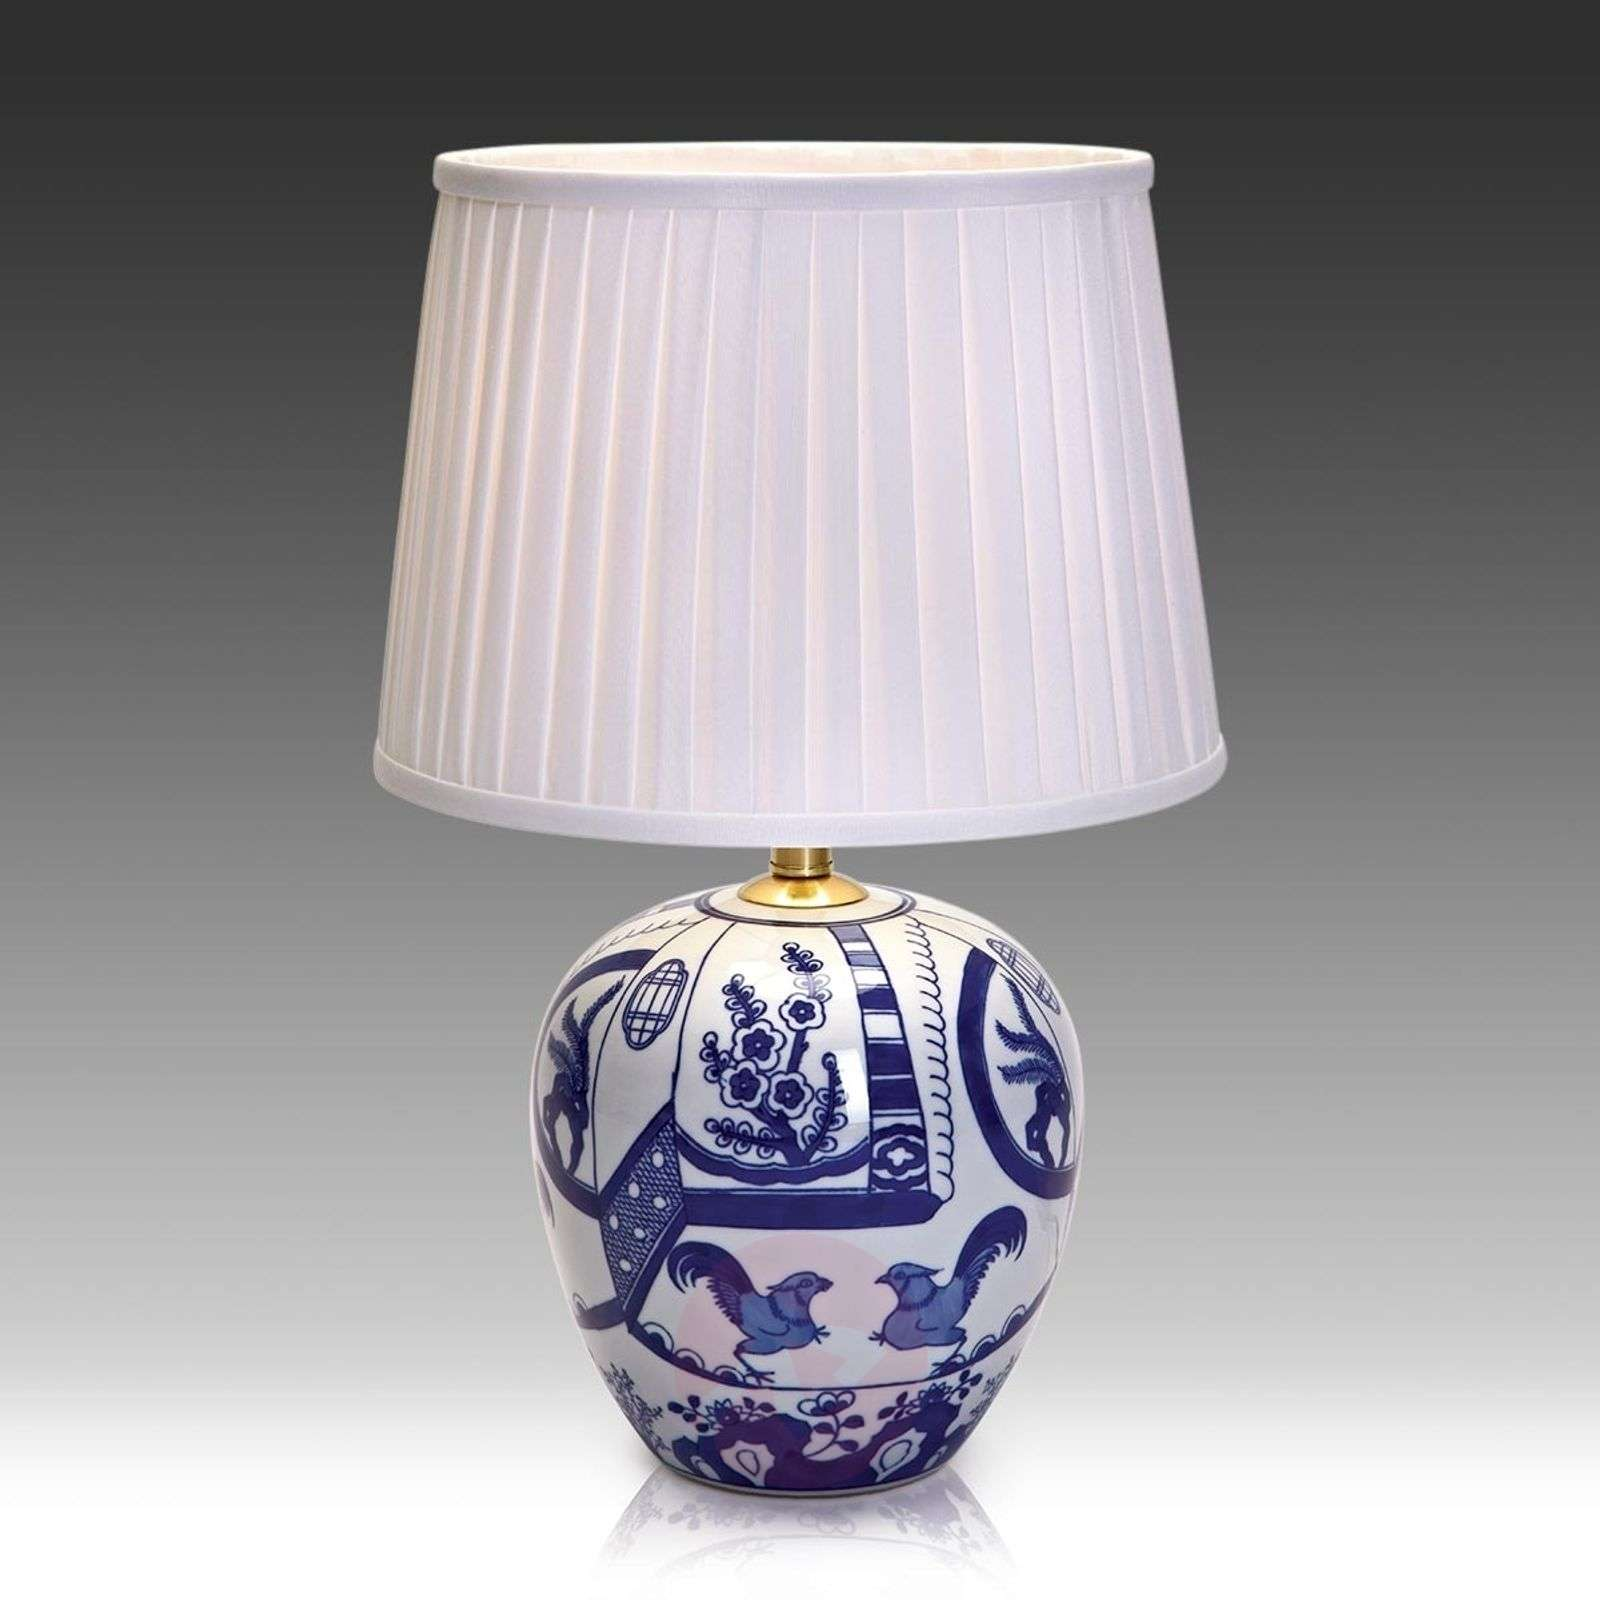 Gteborg stylish table lamp 45 cm lights mozeypictures Images